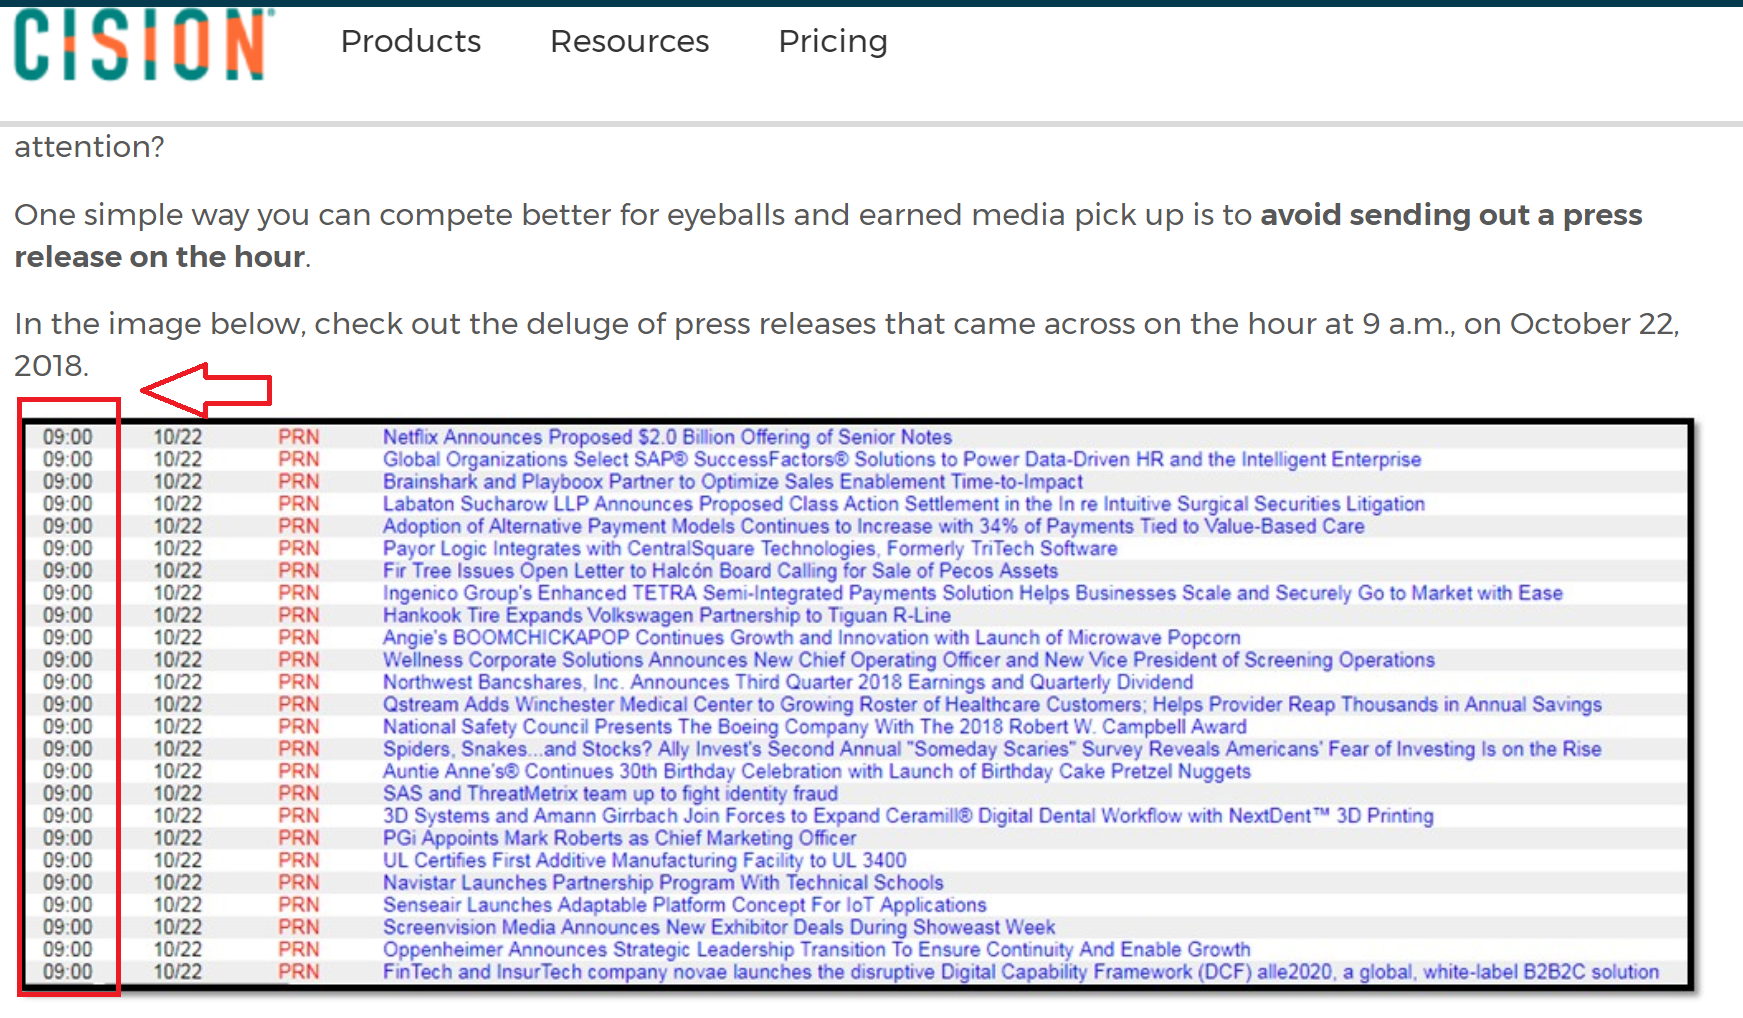 The most popular time to send press releases: 9 am